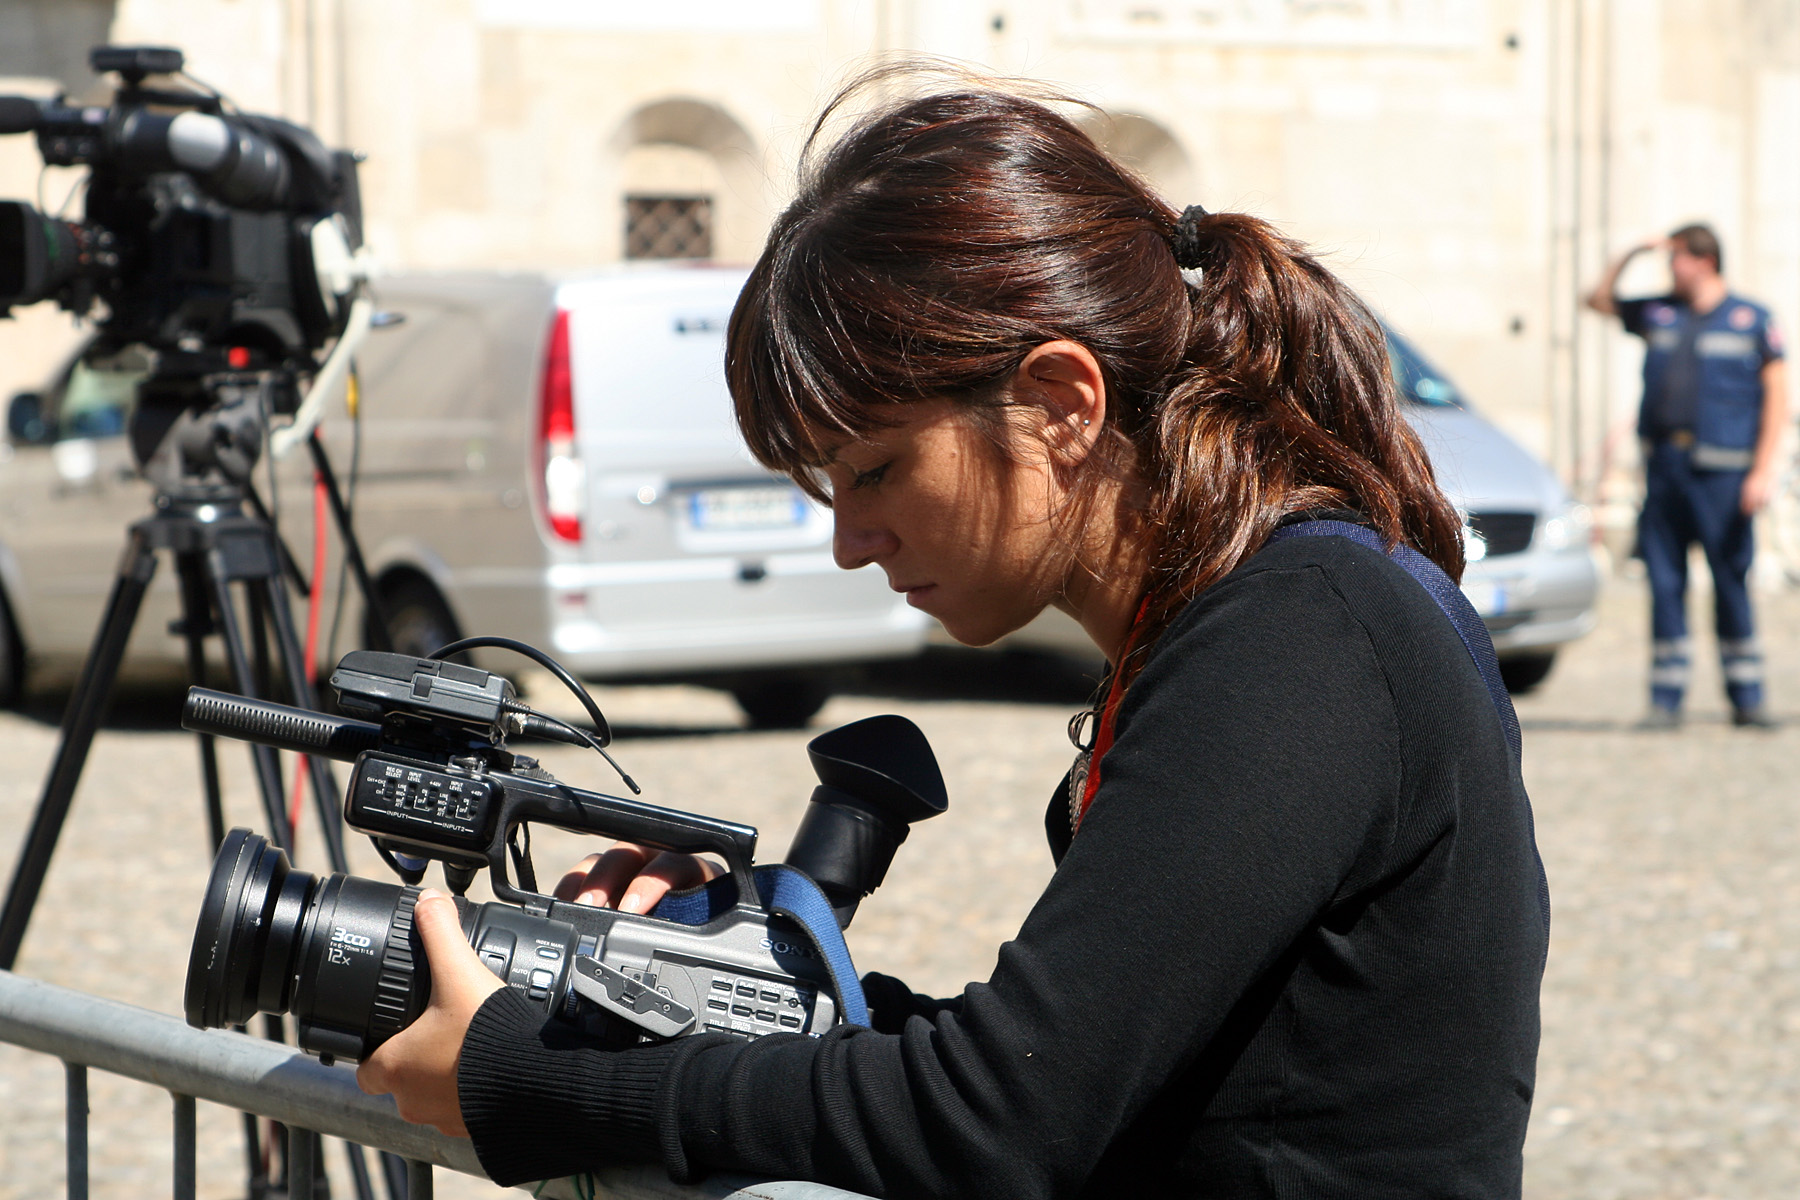 creative jobs ideal for broadcast journalists looking beyond the